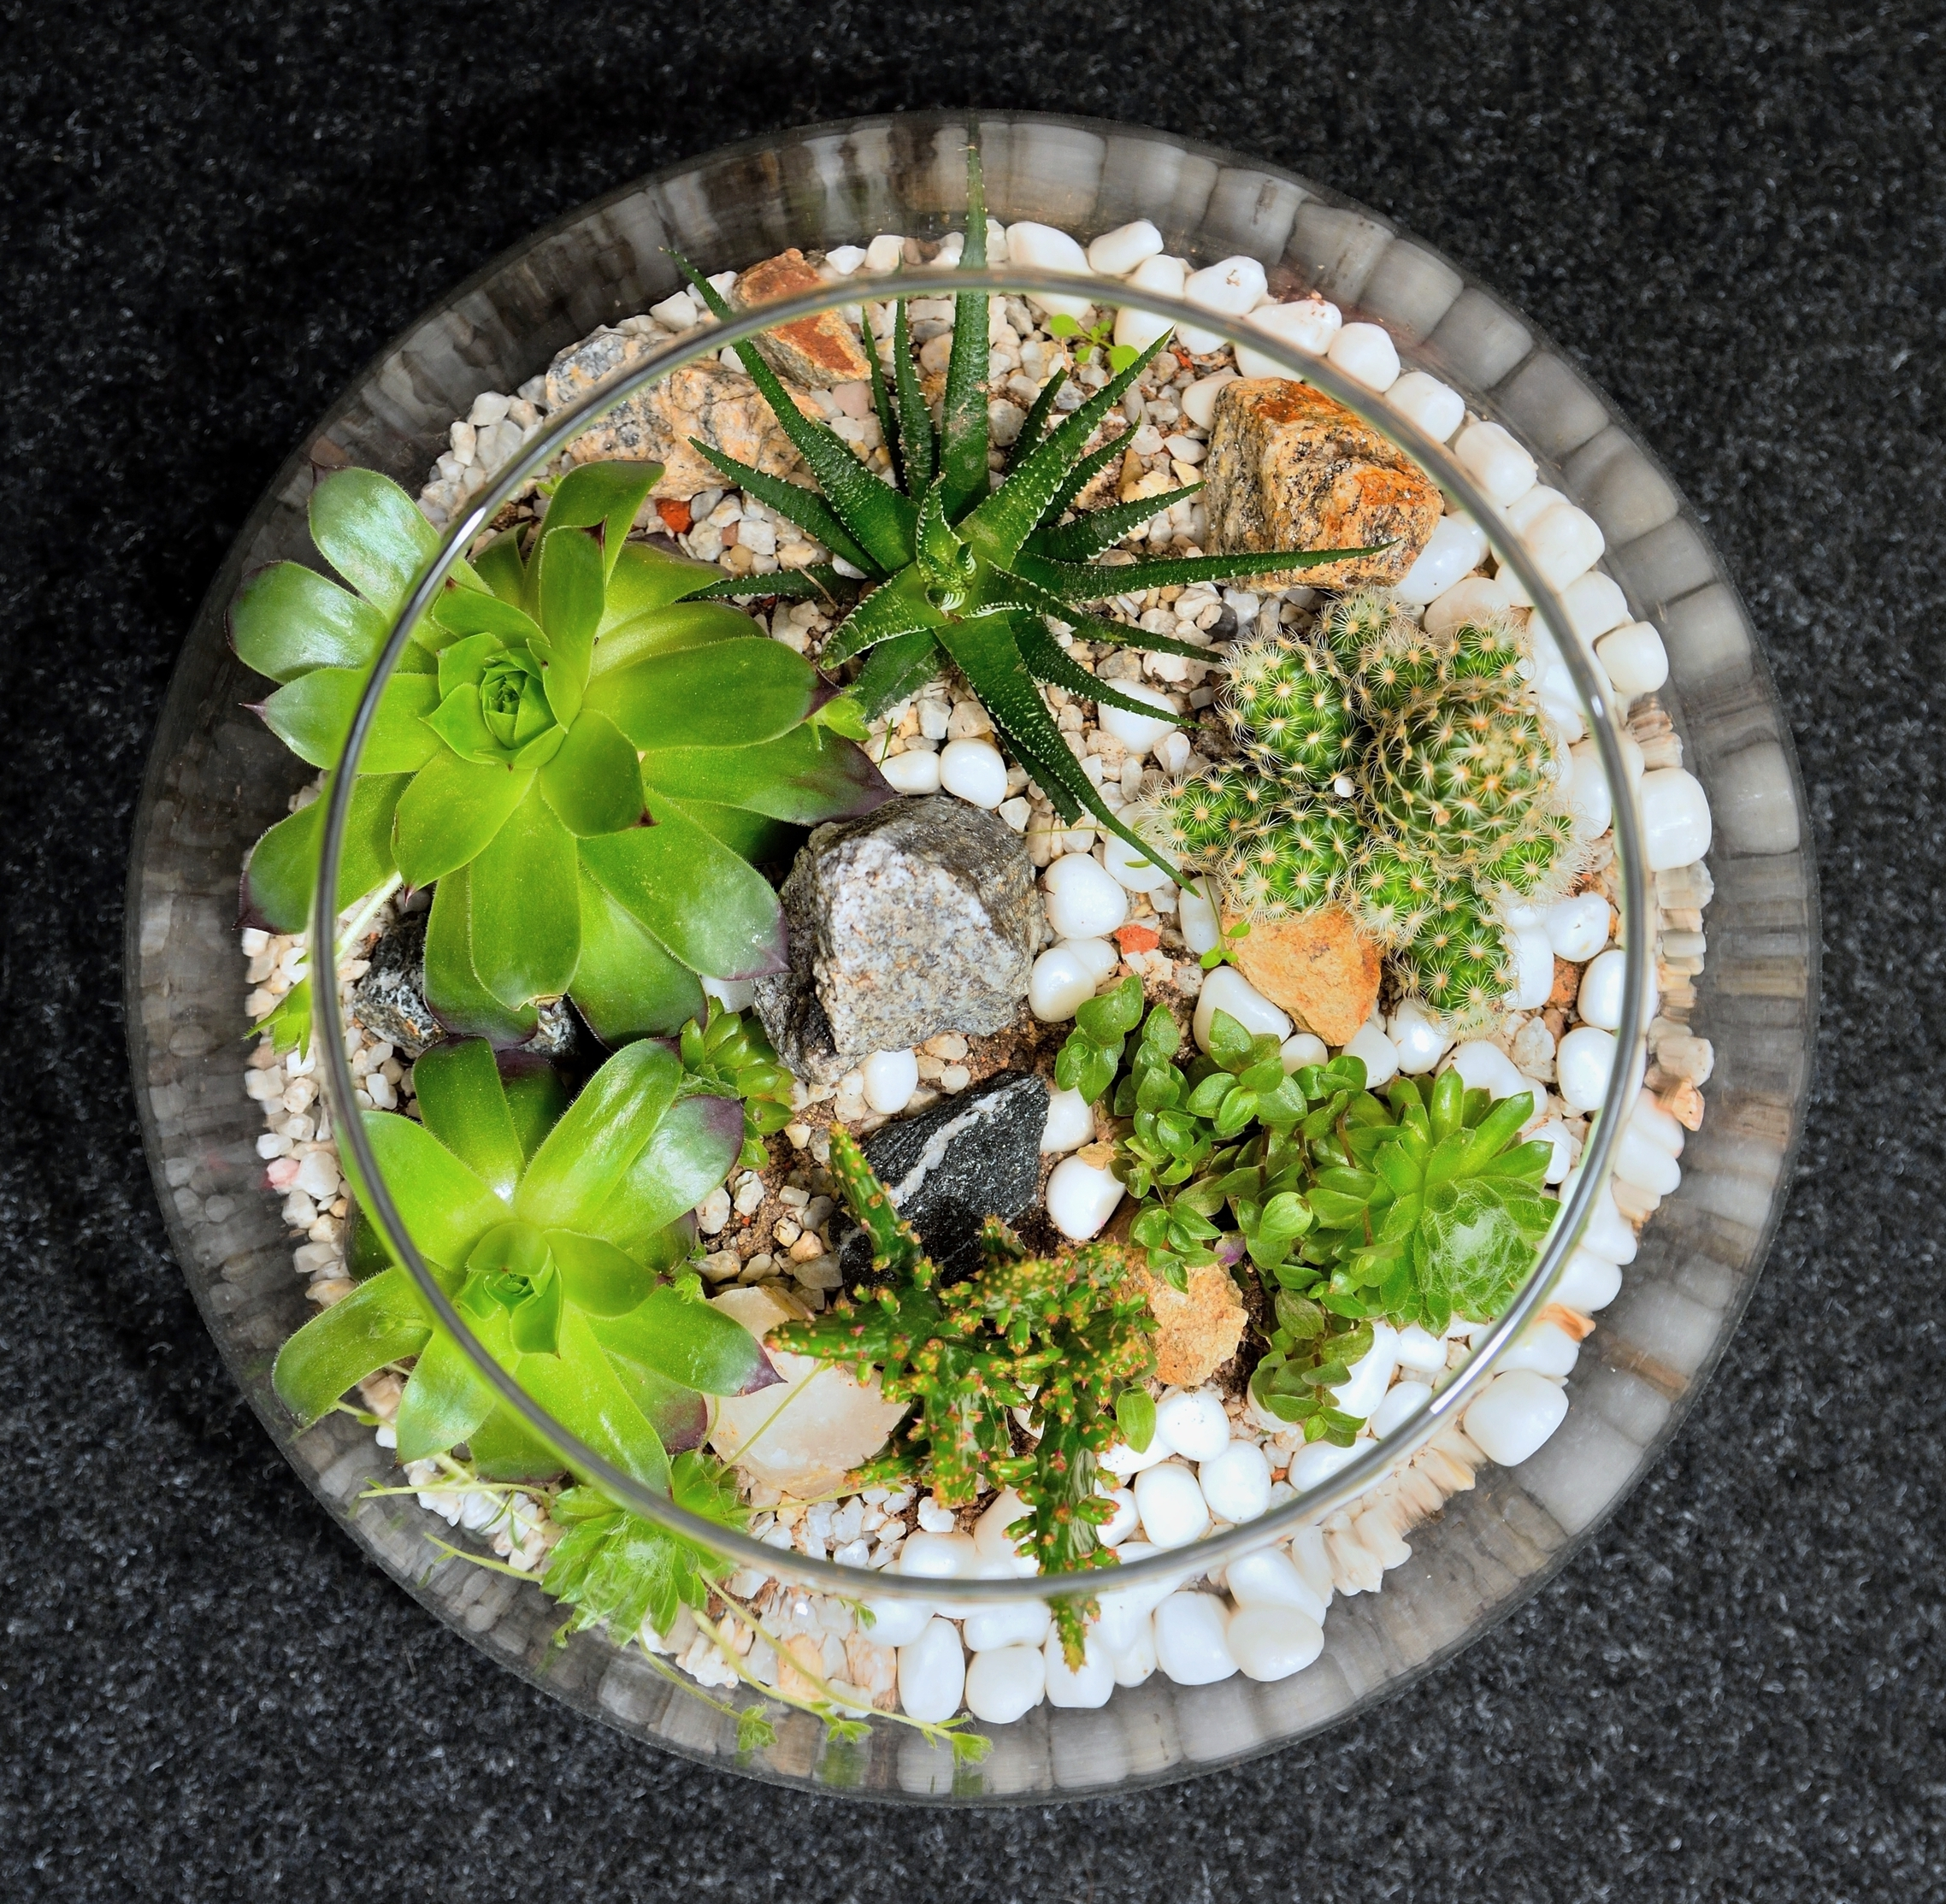 table top indoor decorative miniature garden in clear glass bubble with cactuses and succulents. Decorative glass vase with succulent and cactus plants glass interior terrarium with succulents and cacti